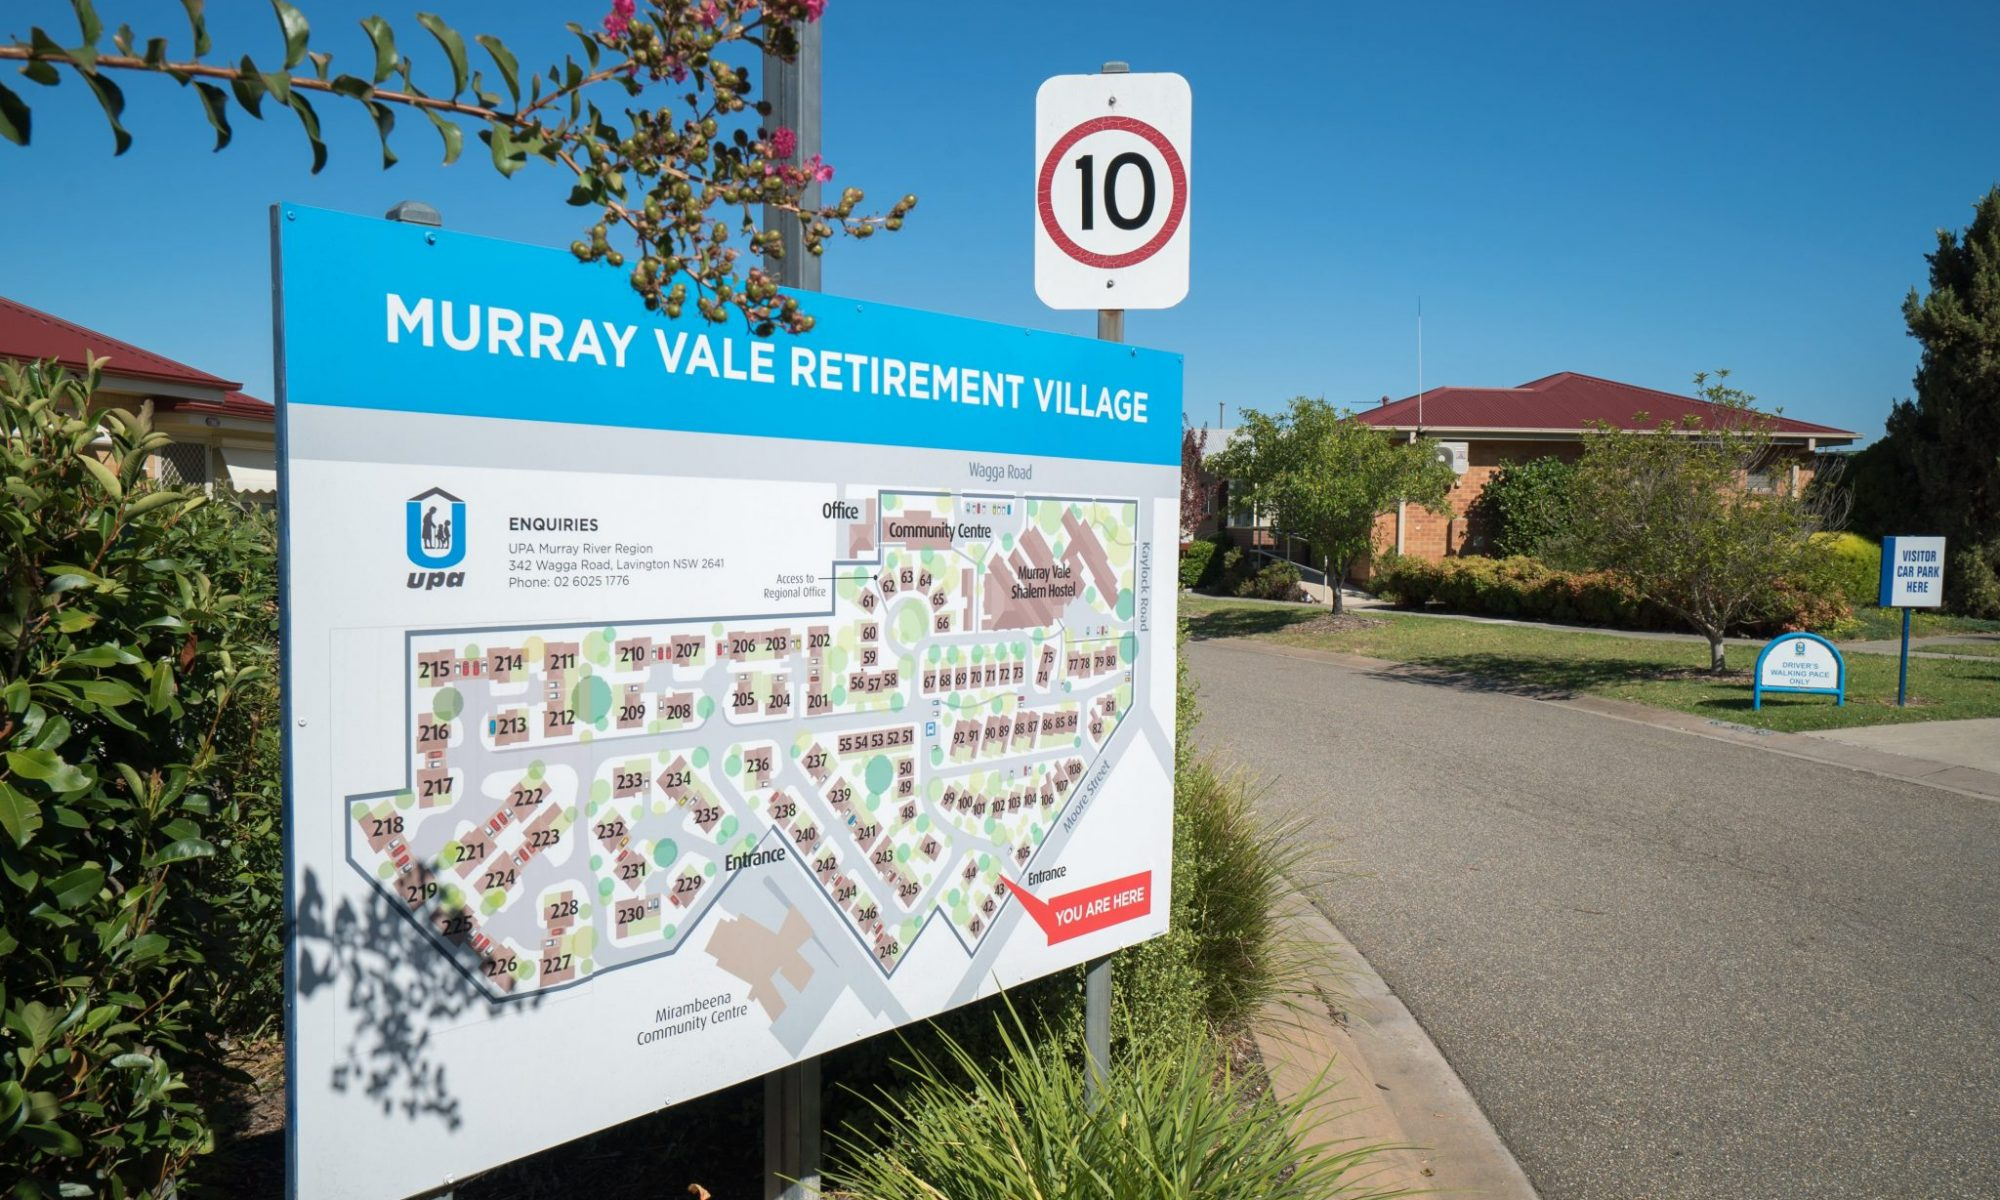 Murray Vale Retirement Village entrance street map - Lavington-00108